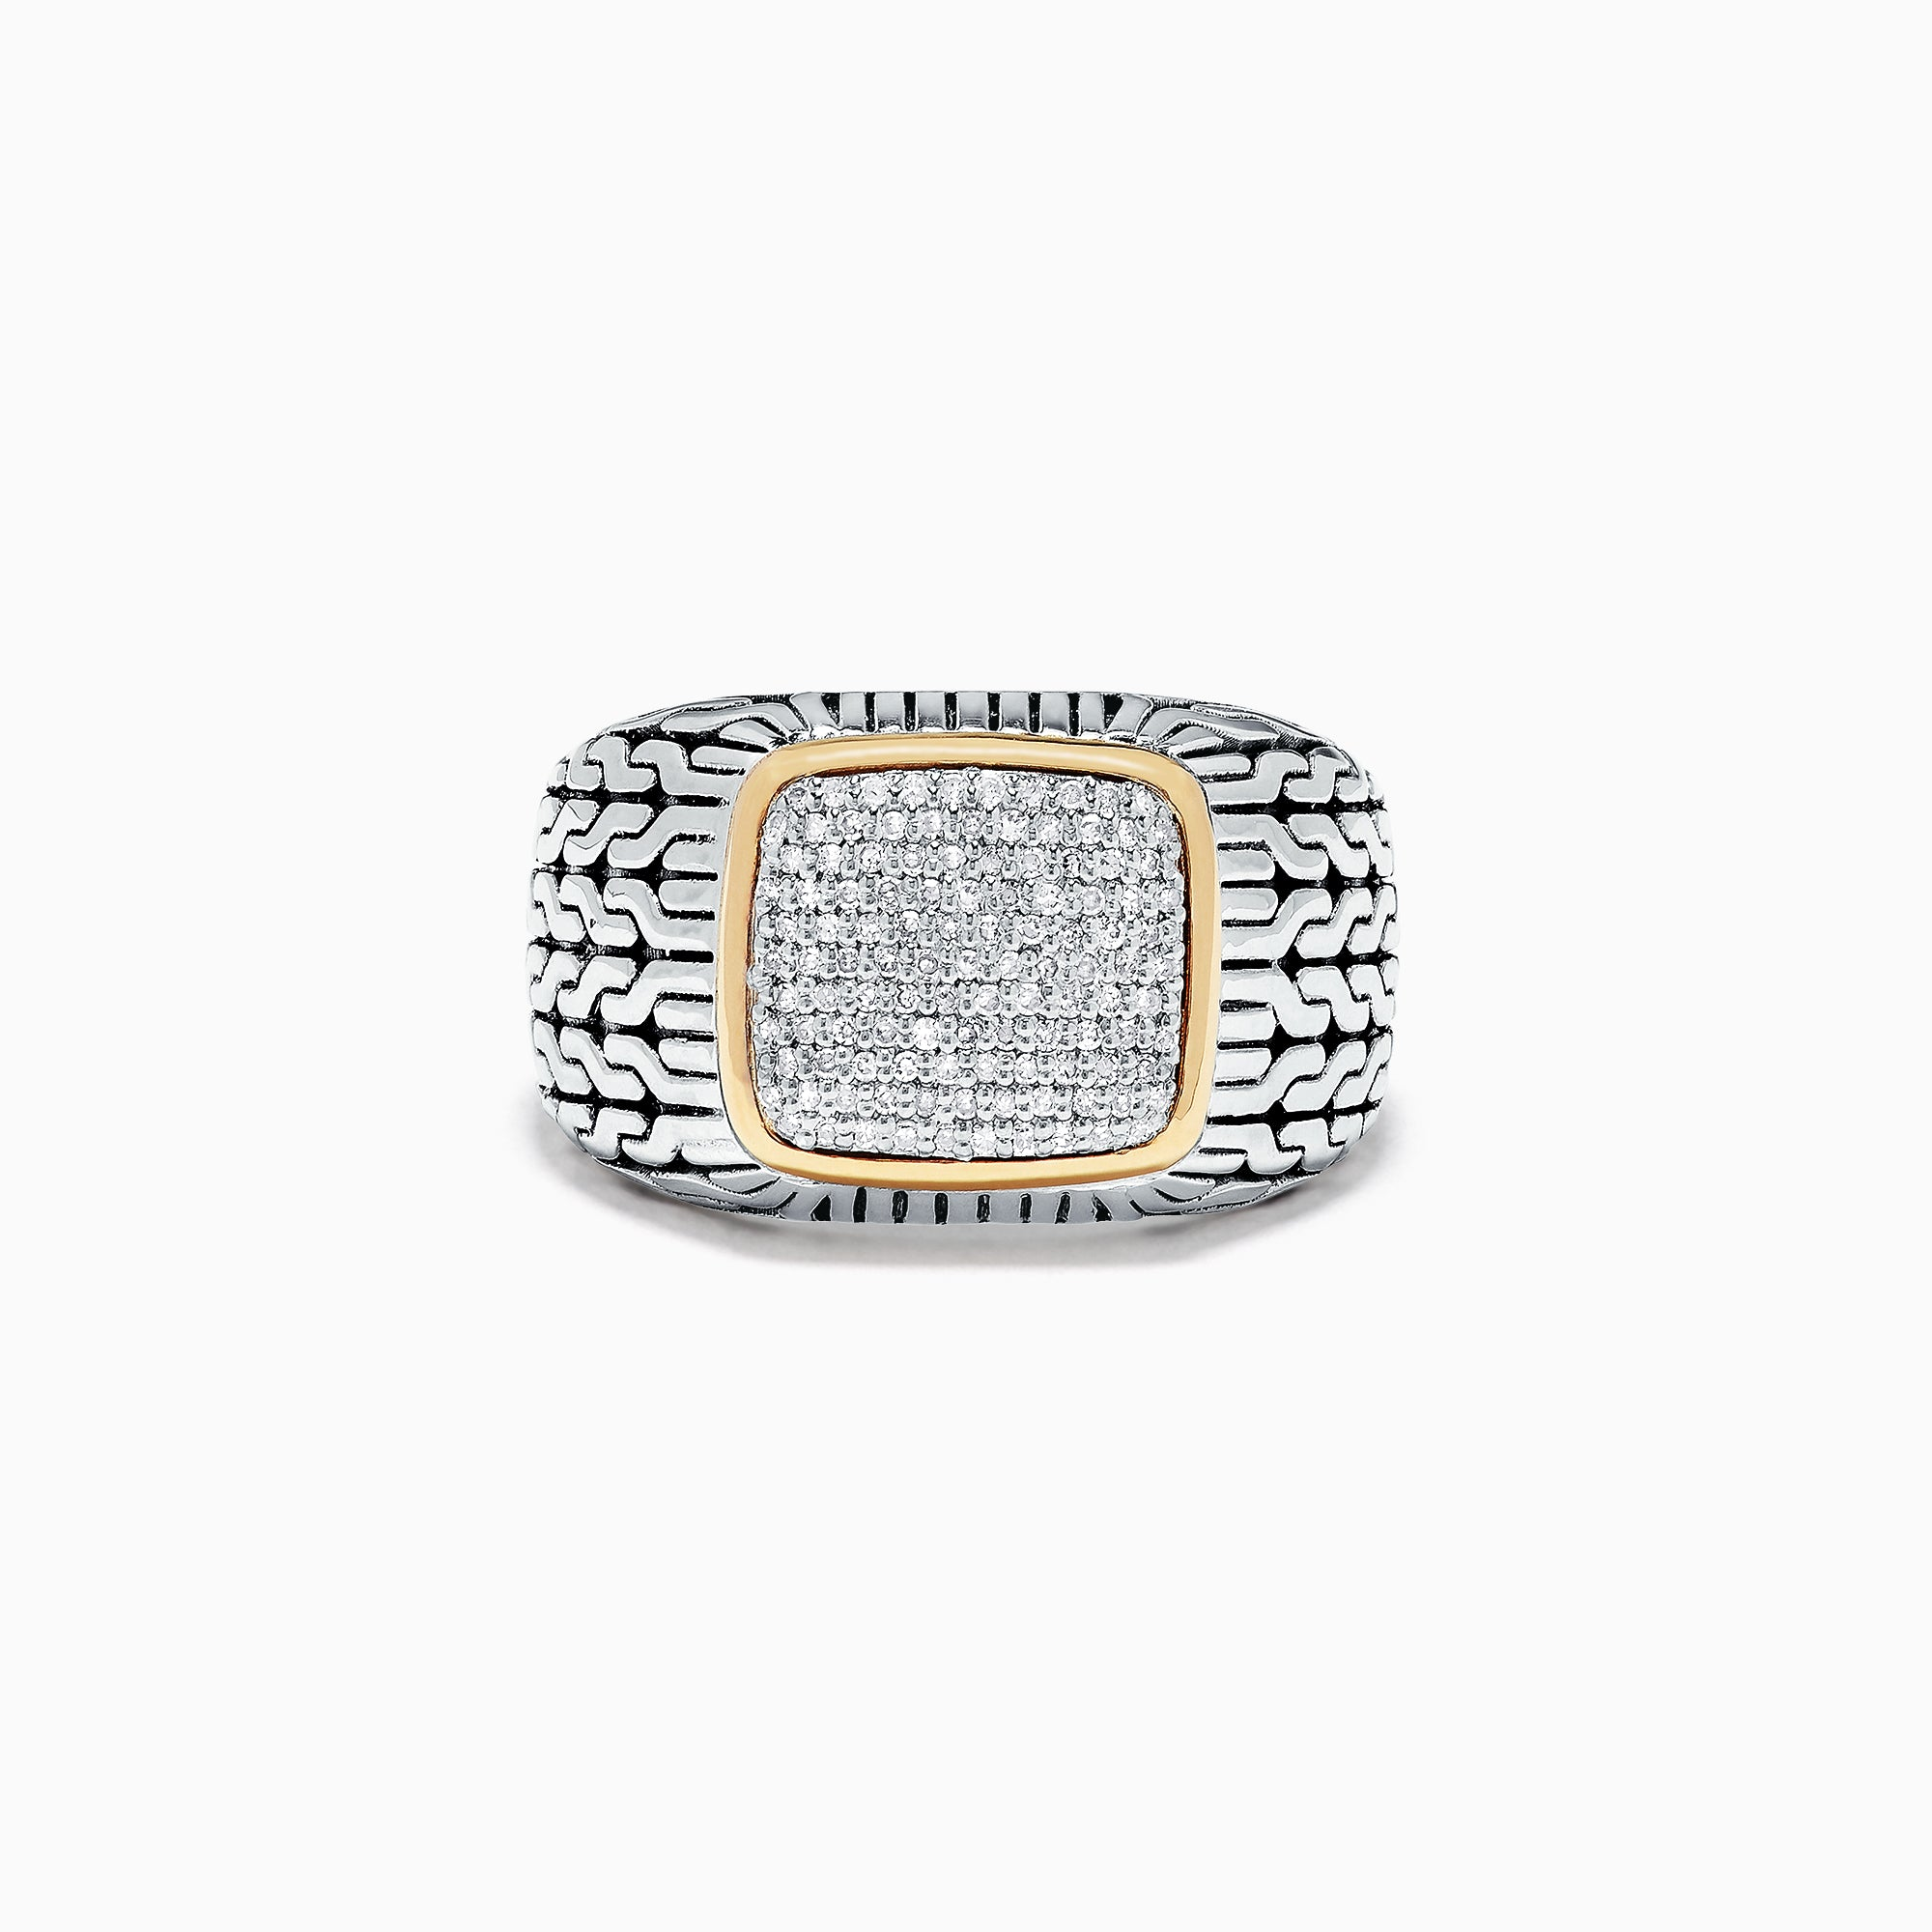 Effy Men's Sterling Silver and 18K Yellow Gold White Diamond Ring, .34 TCW